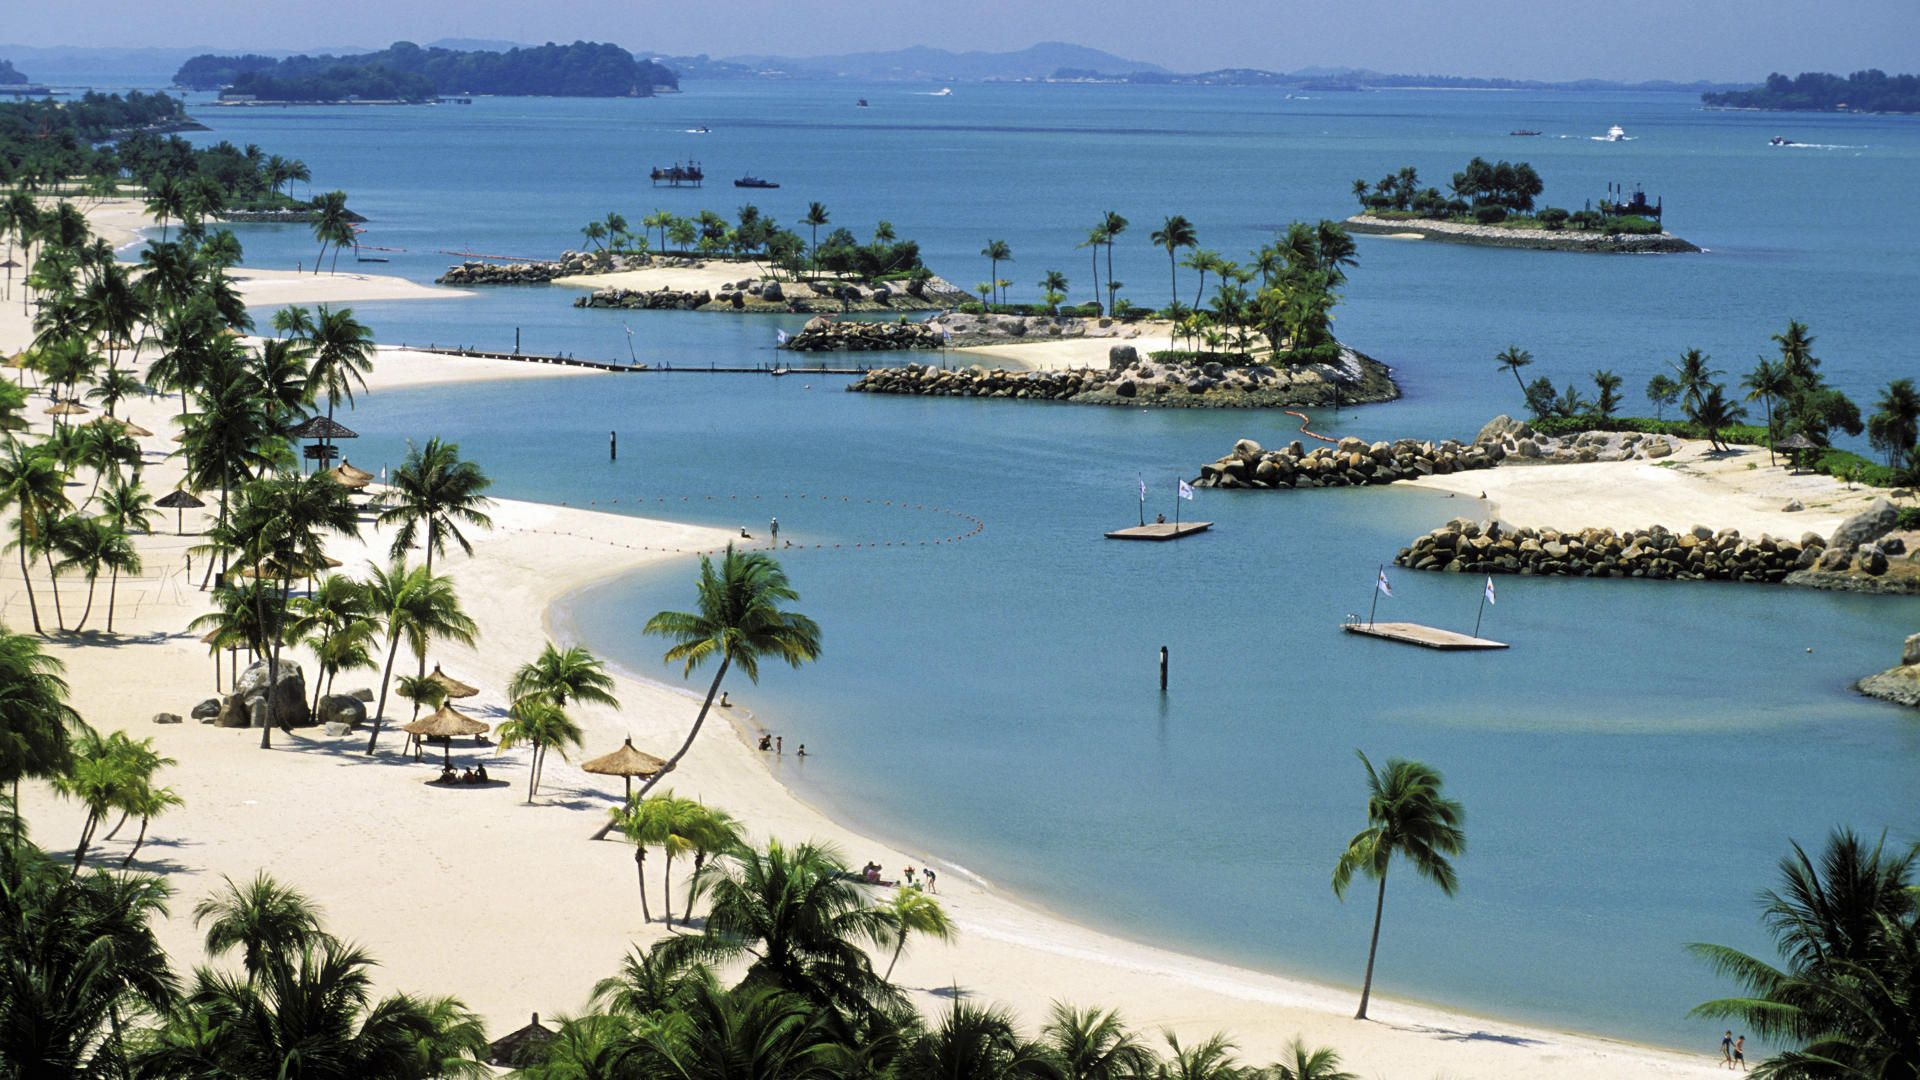 Singapore, the artificial beach of the Sentosa island